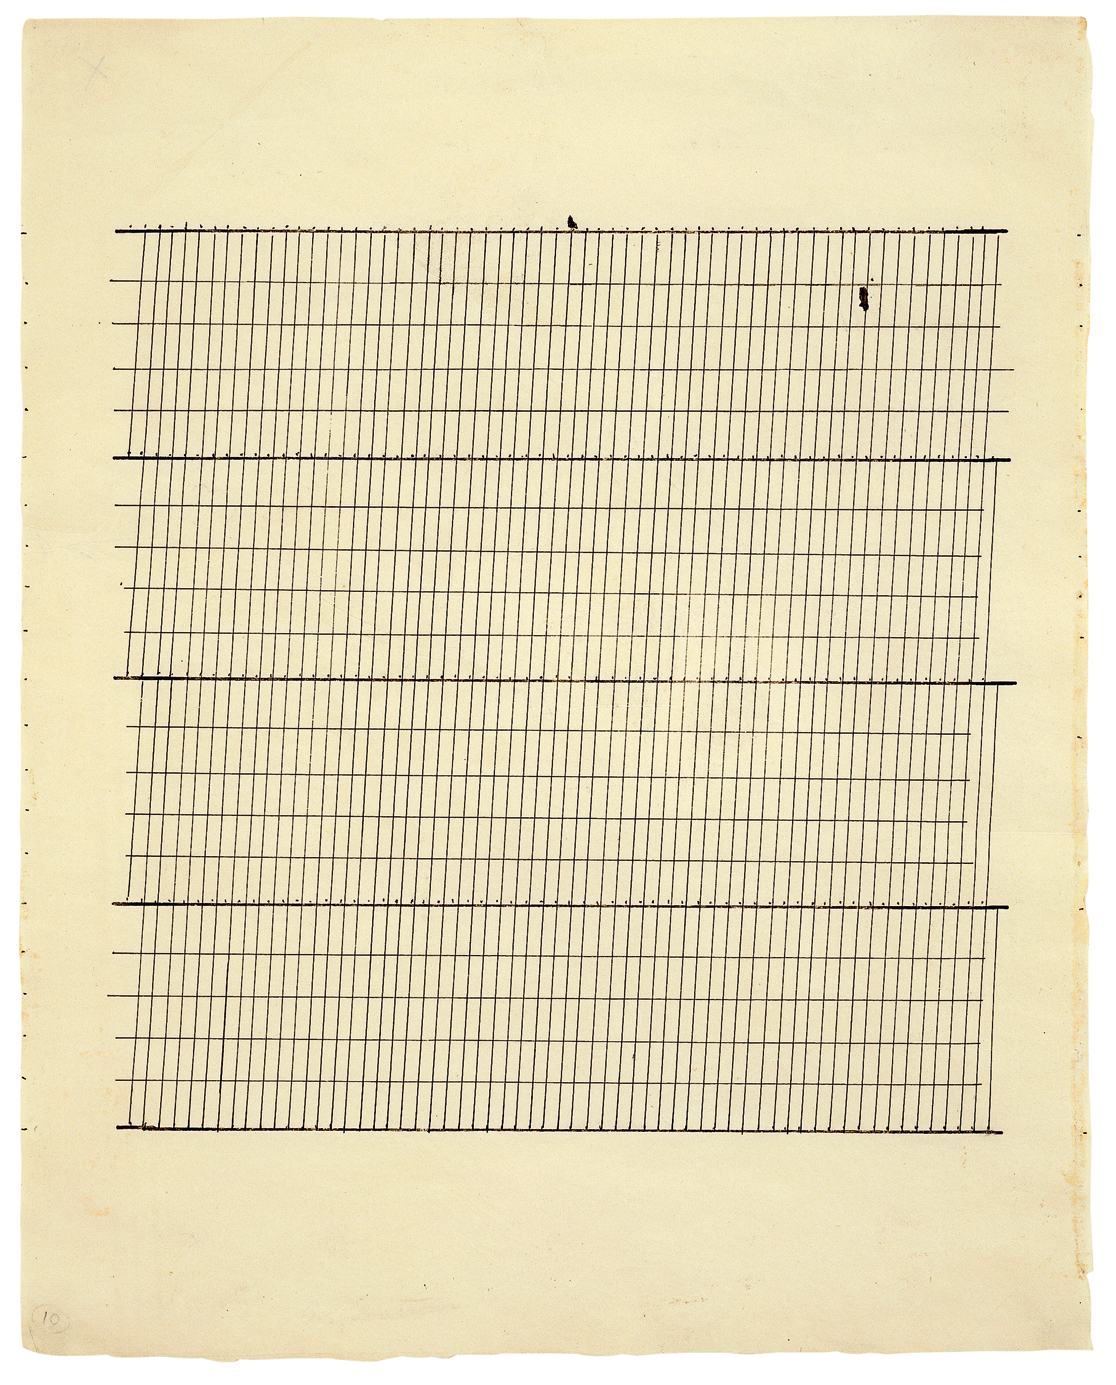 Agnes Martin, Aspiration, 1960, Ink on paper, 11 3/4 x 9 3/8 inches (29.8 x 23.8 cm) © 2012 Estate of Agnes Martin / Artists Rights Society (ARS), New York